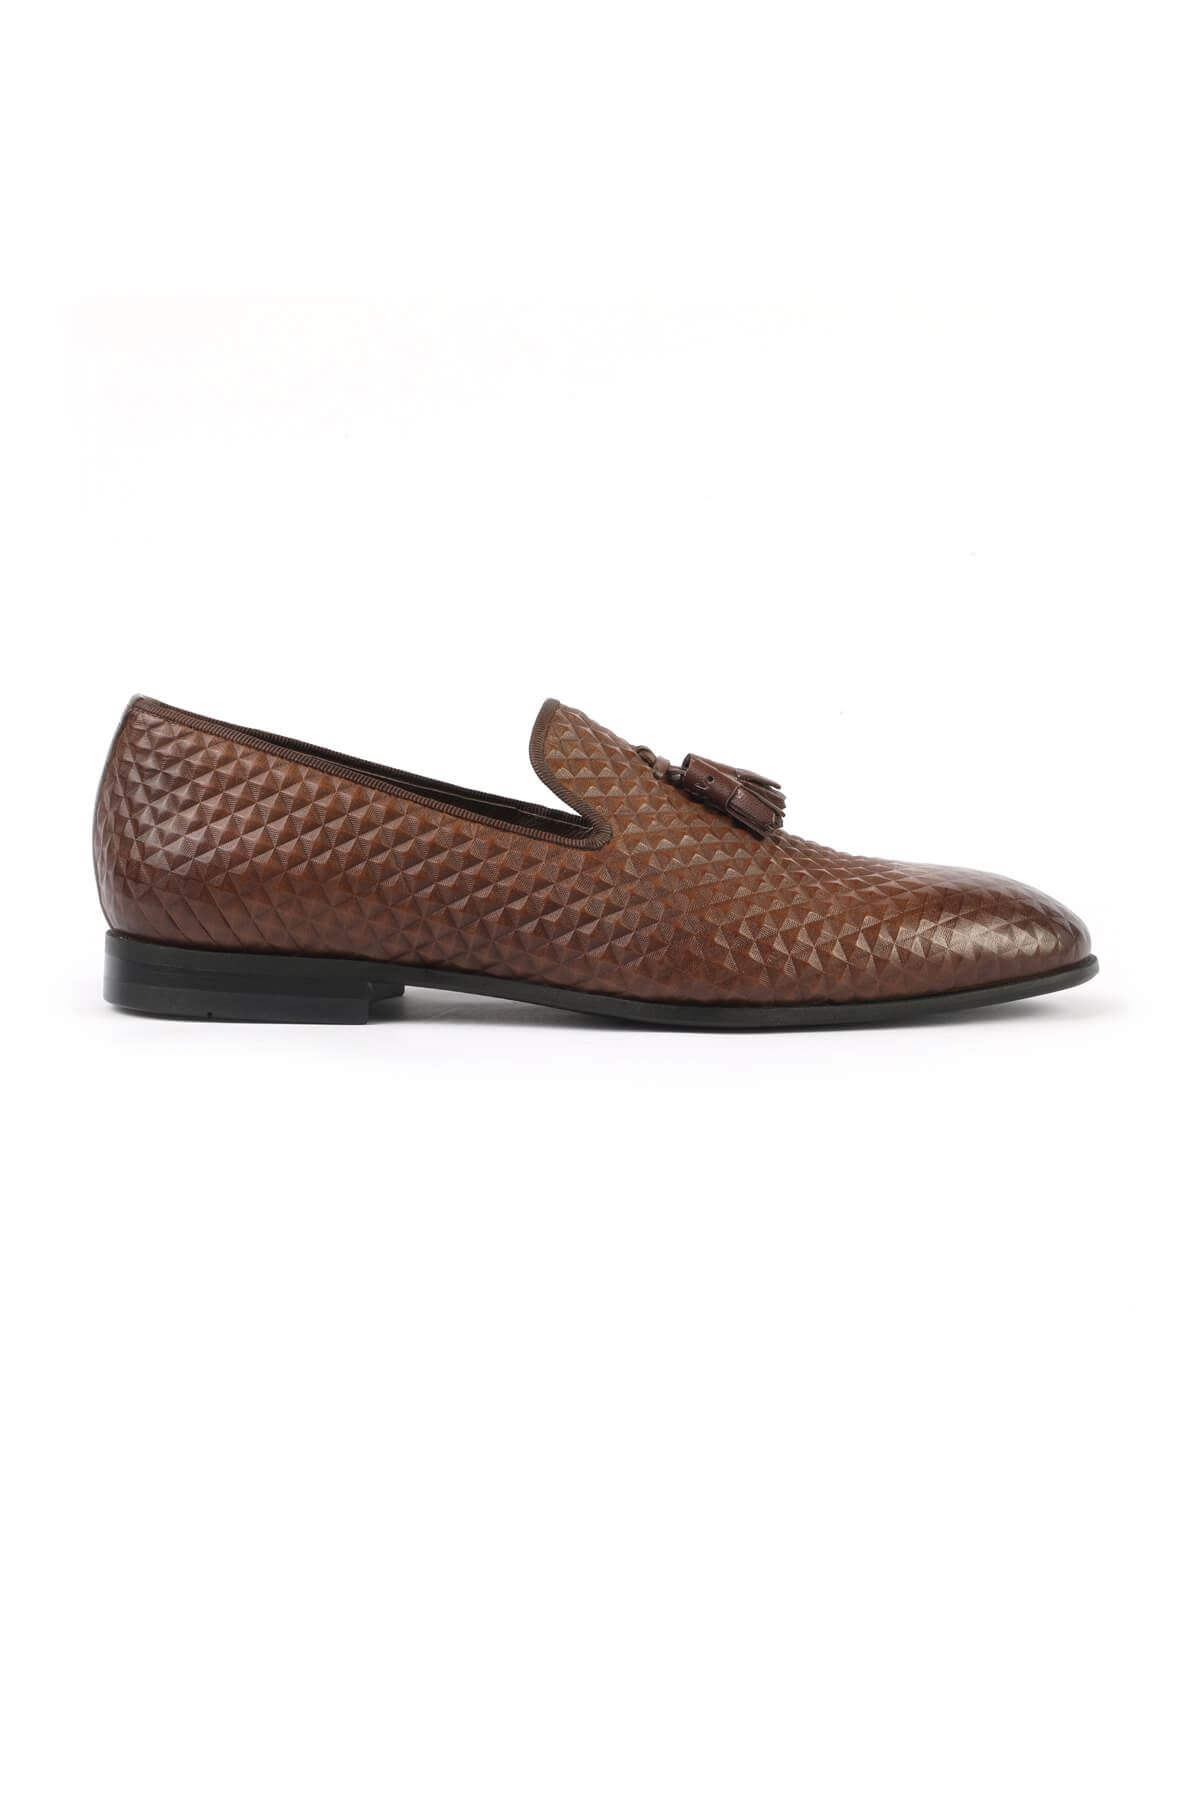 Libero 2830 Brown Loafer Shoes